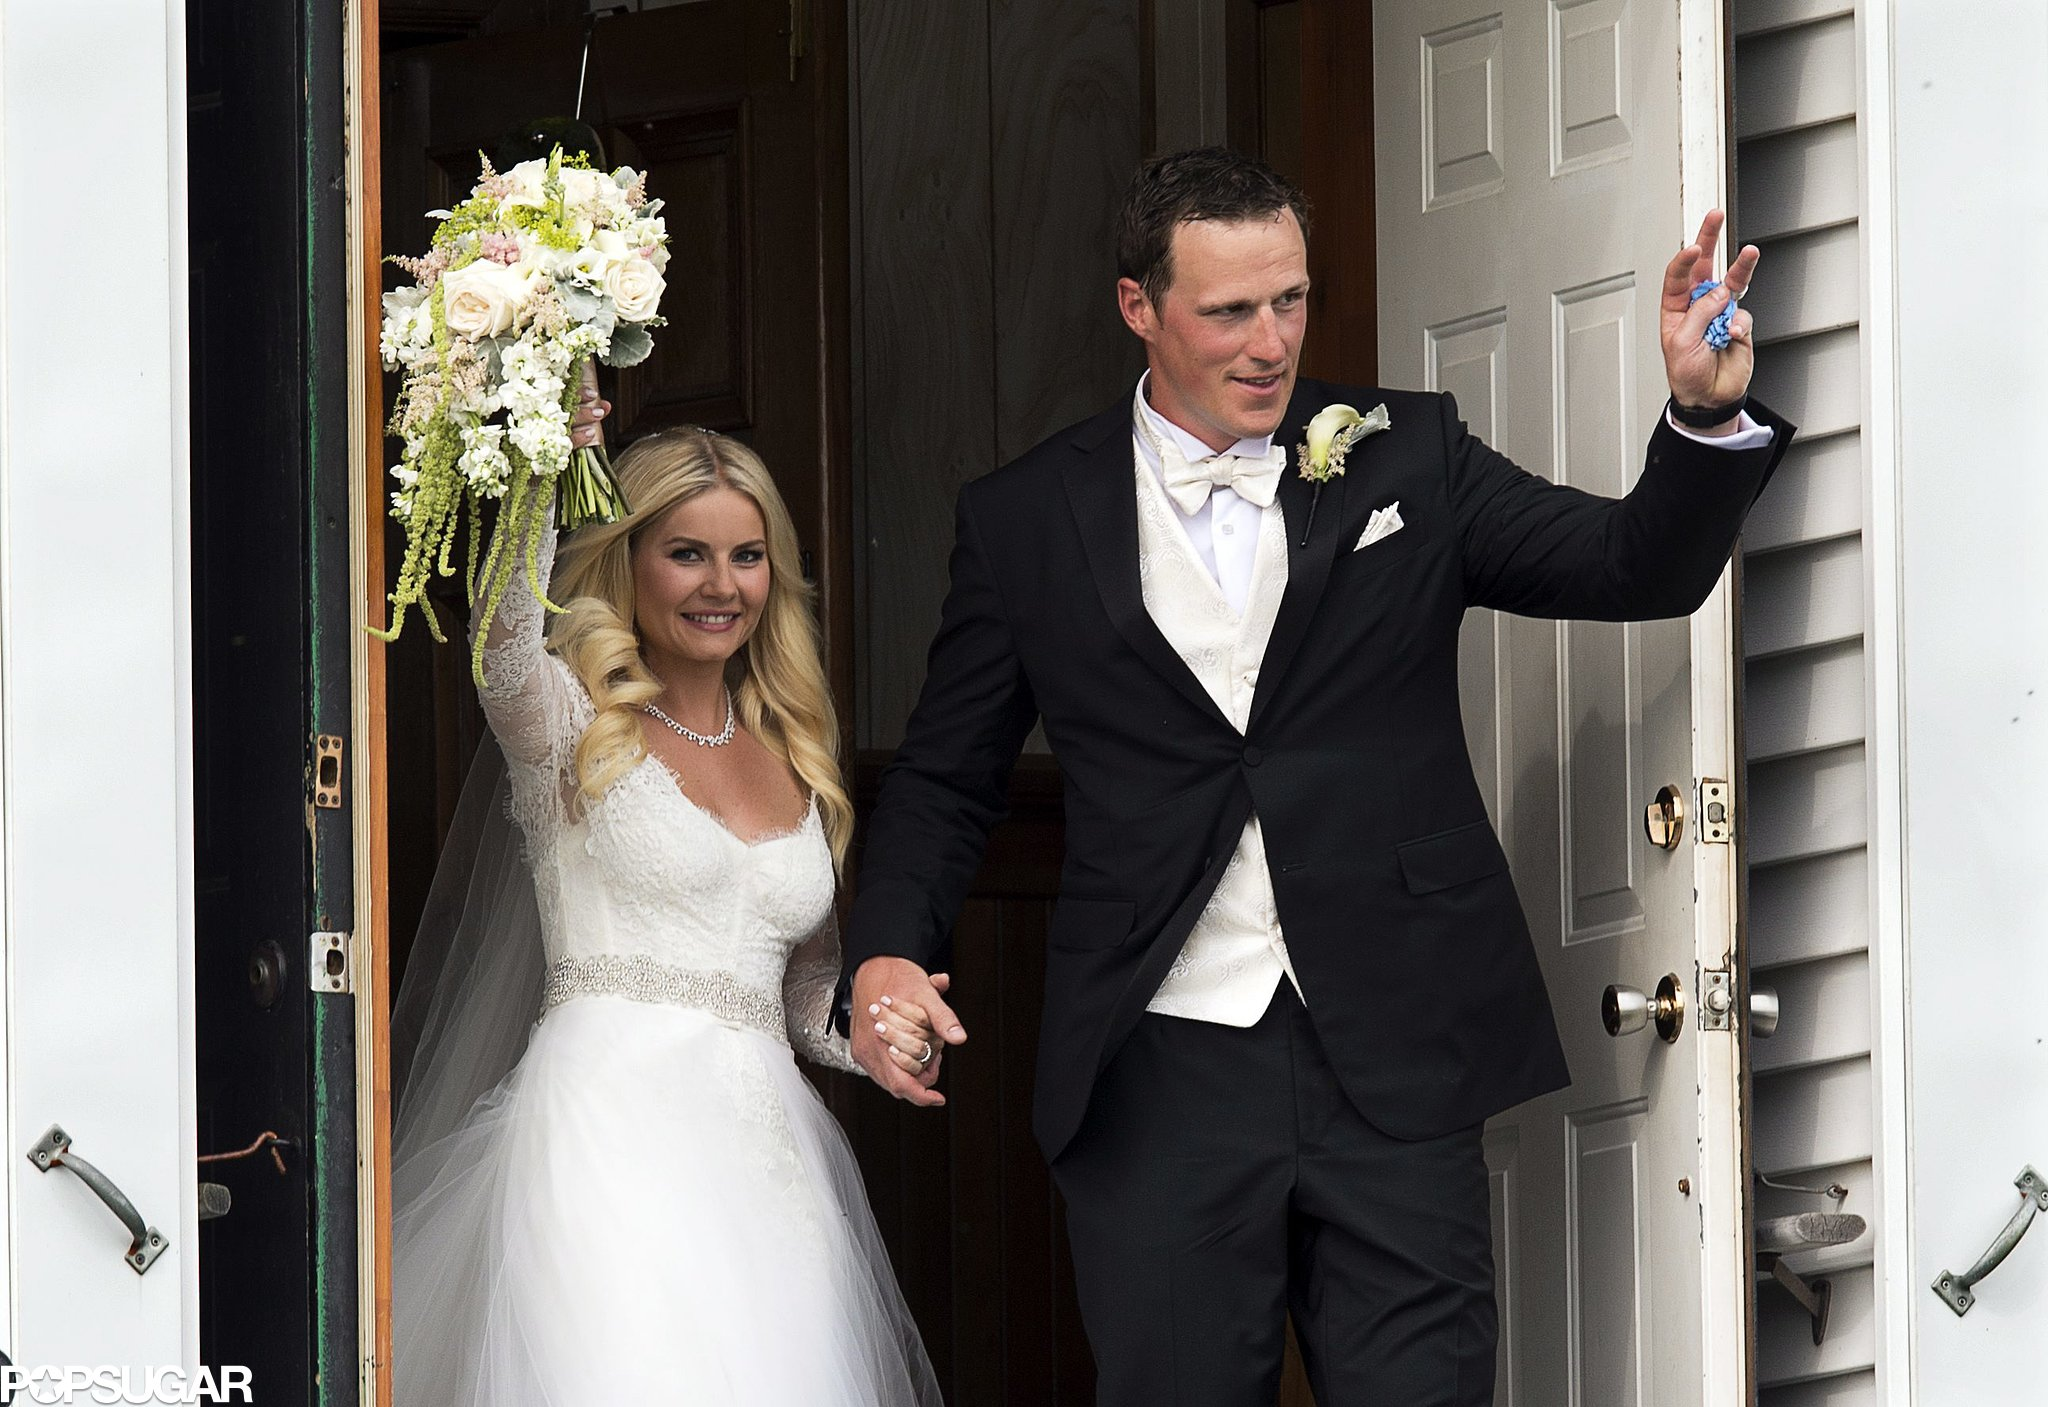 Elisha Cuthbert married Toronto Maple Leafs player Dion Phaneuf in Canada in July 2013.